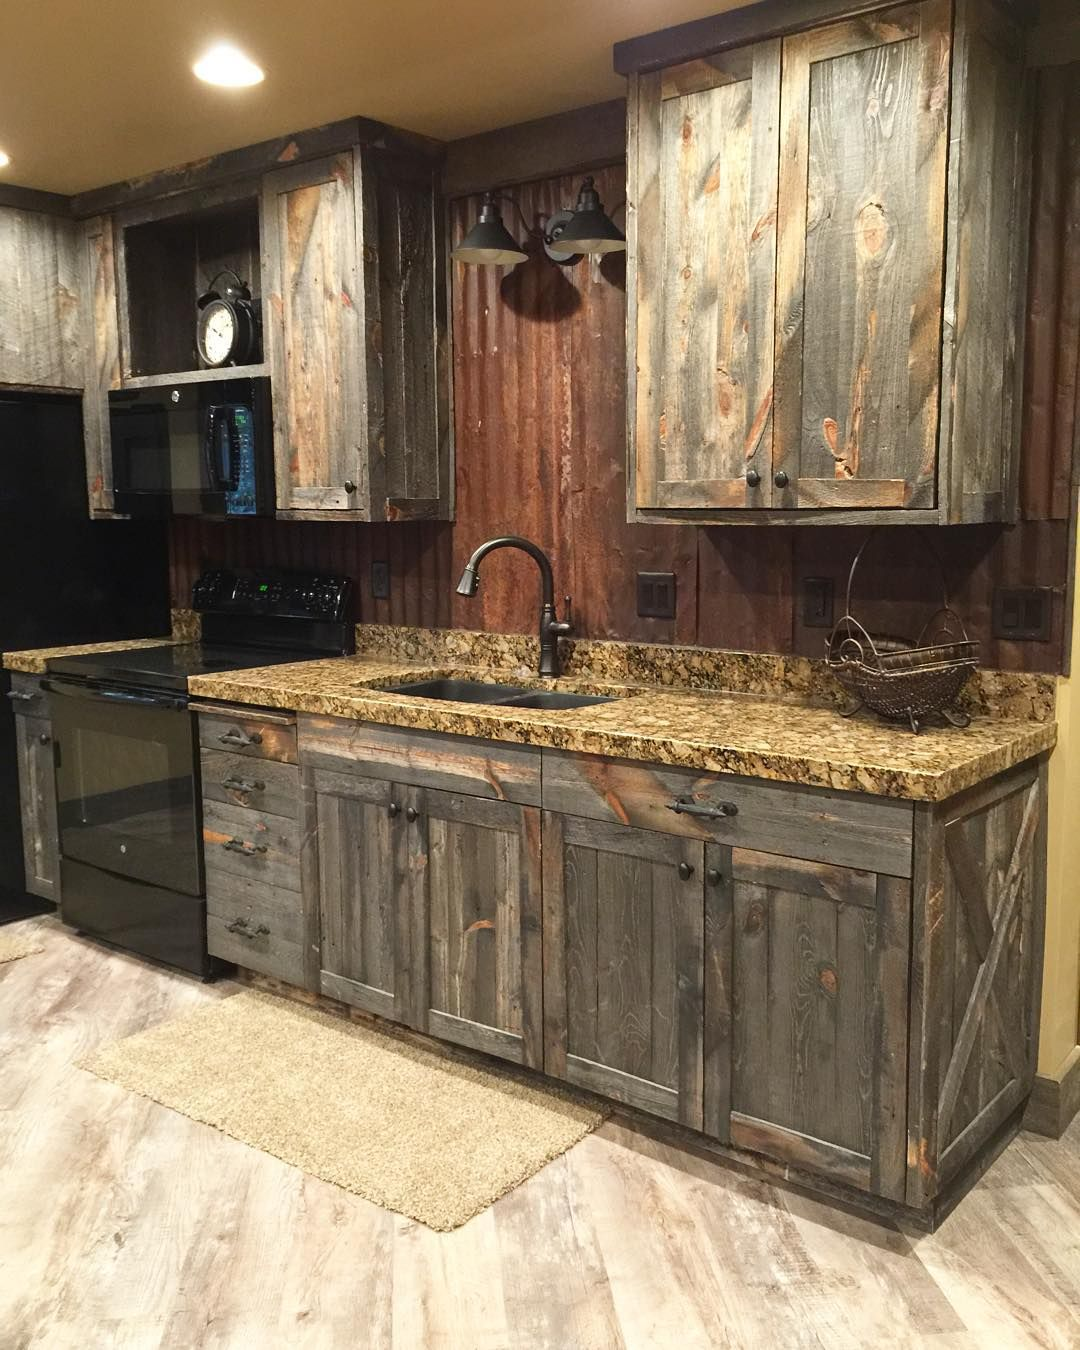 a little barnwood kitchen cabinets and corrugated steel